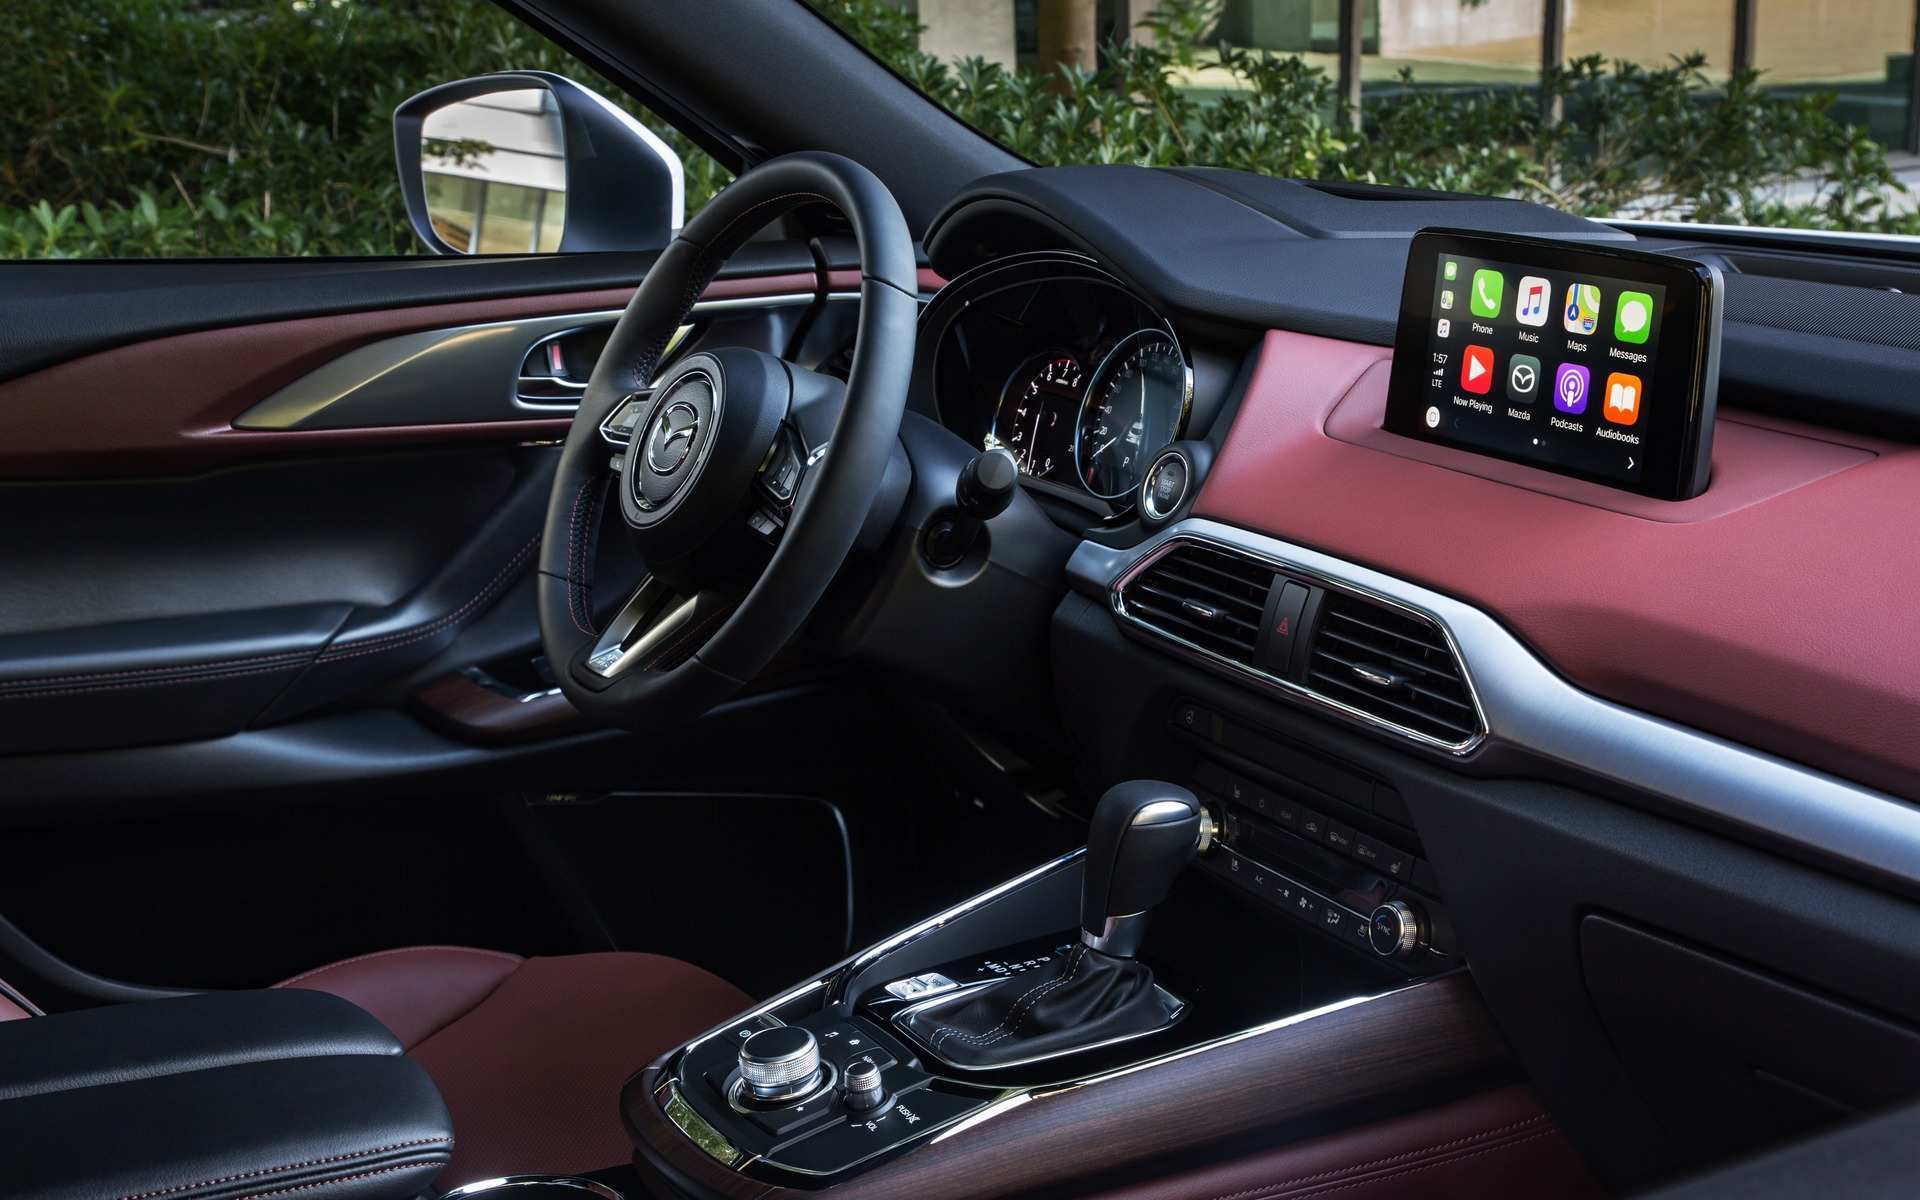 50 Great Mazda 2020 Carplay Reviews with Mazda 2020 Carplay